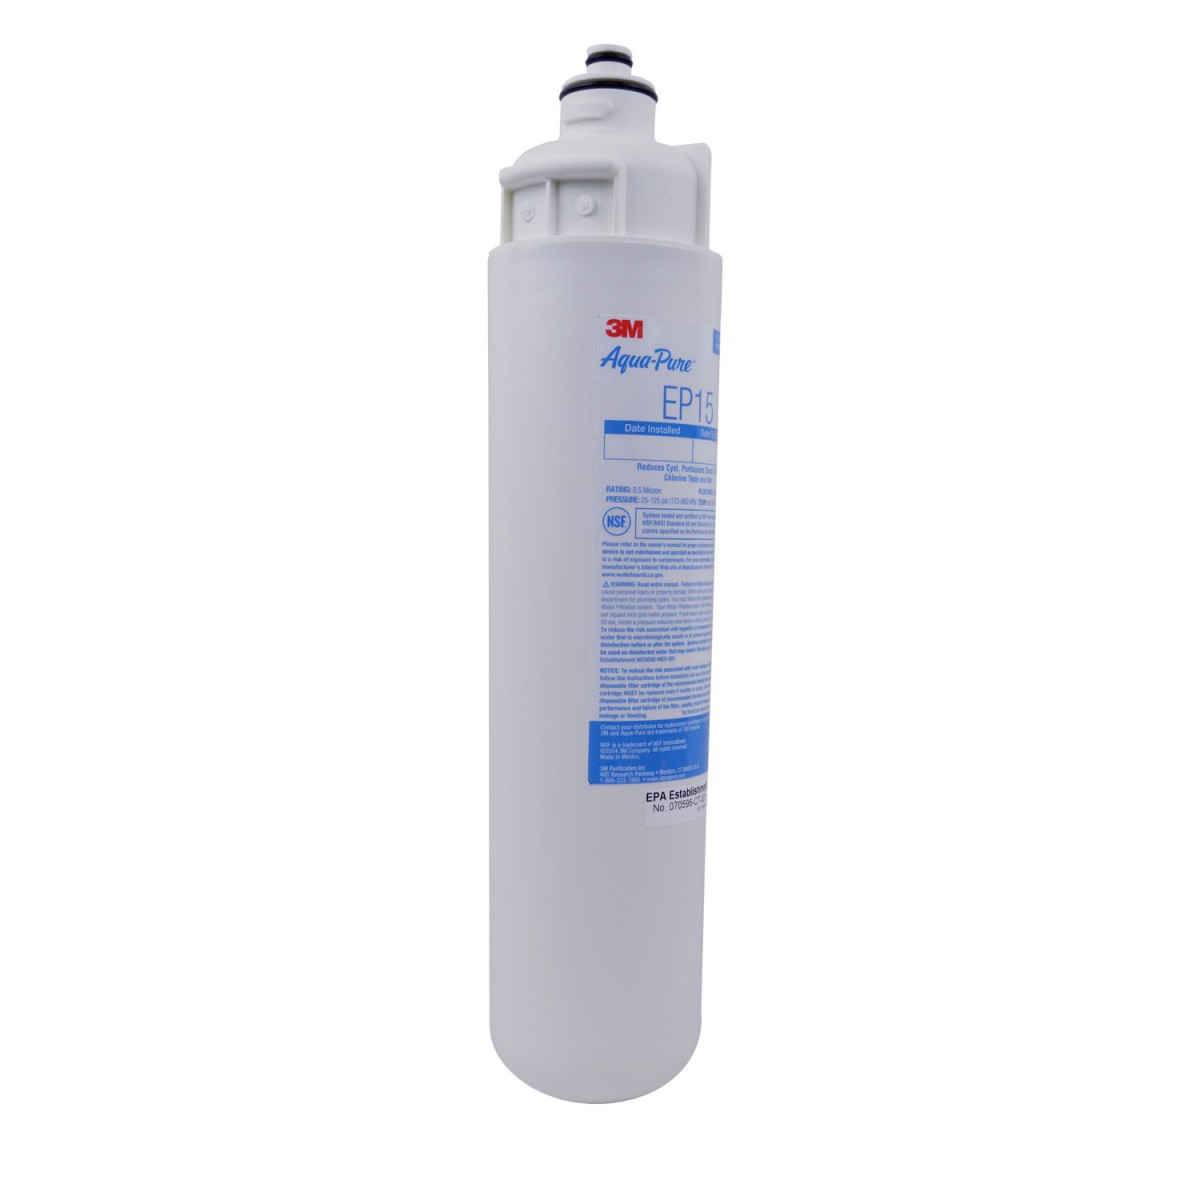 whole house water filter cartridge. Whole House Water Filter Cartridge